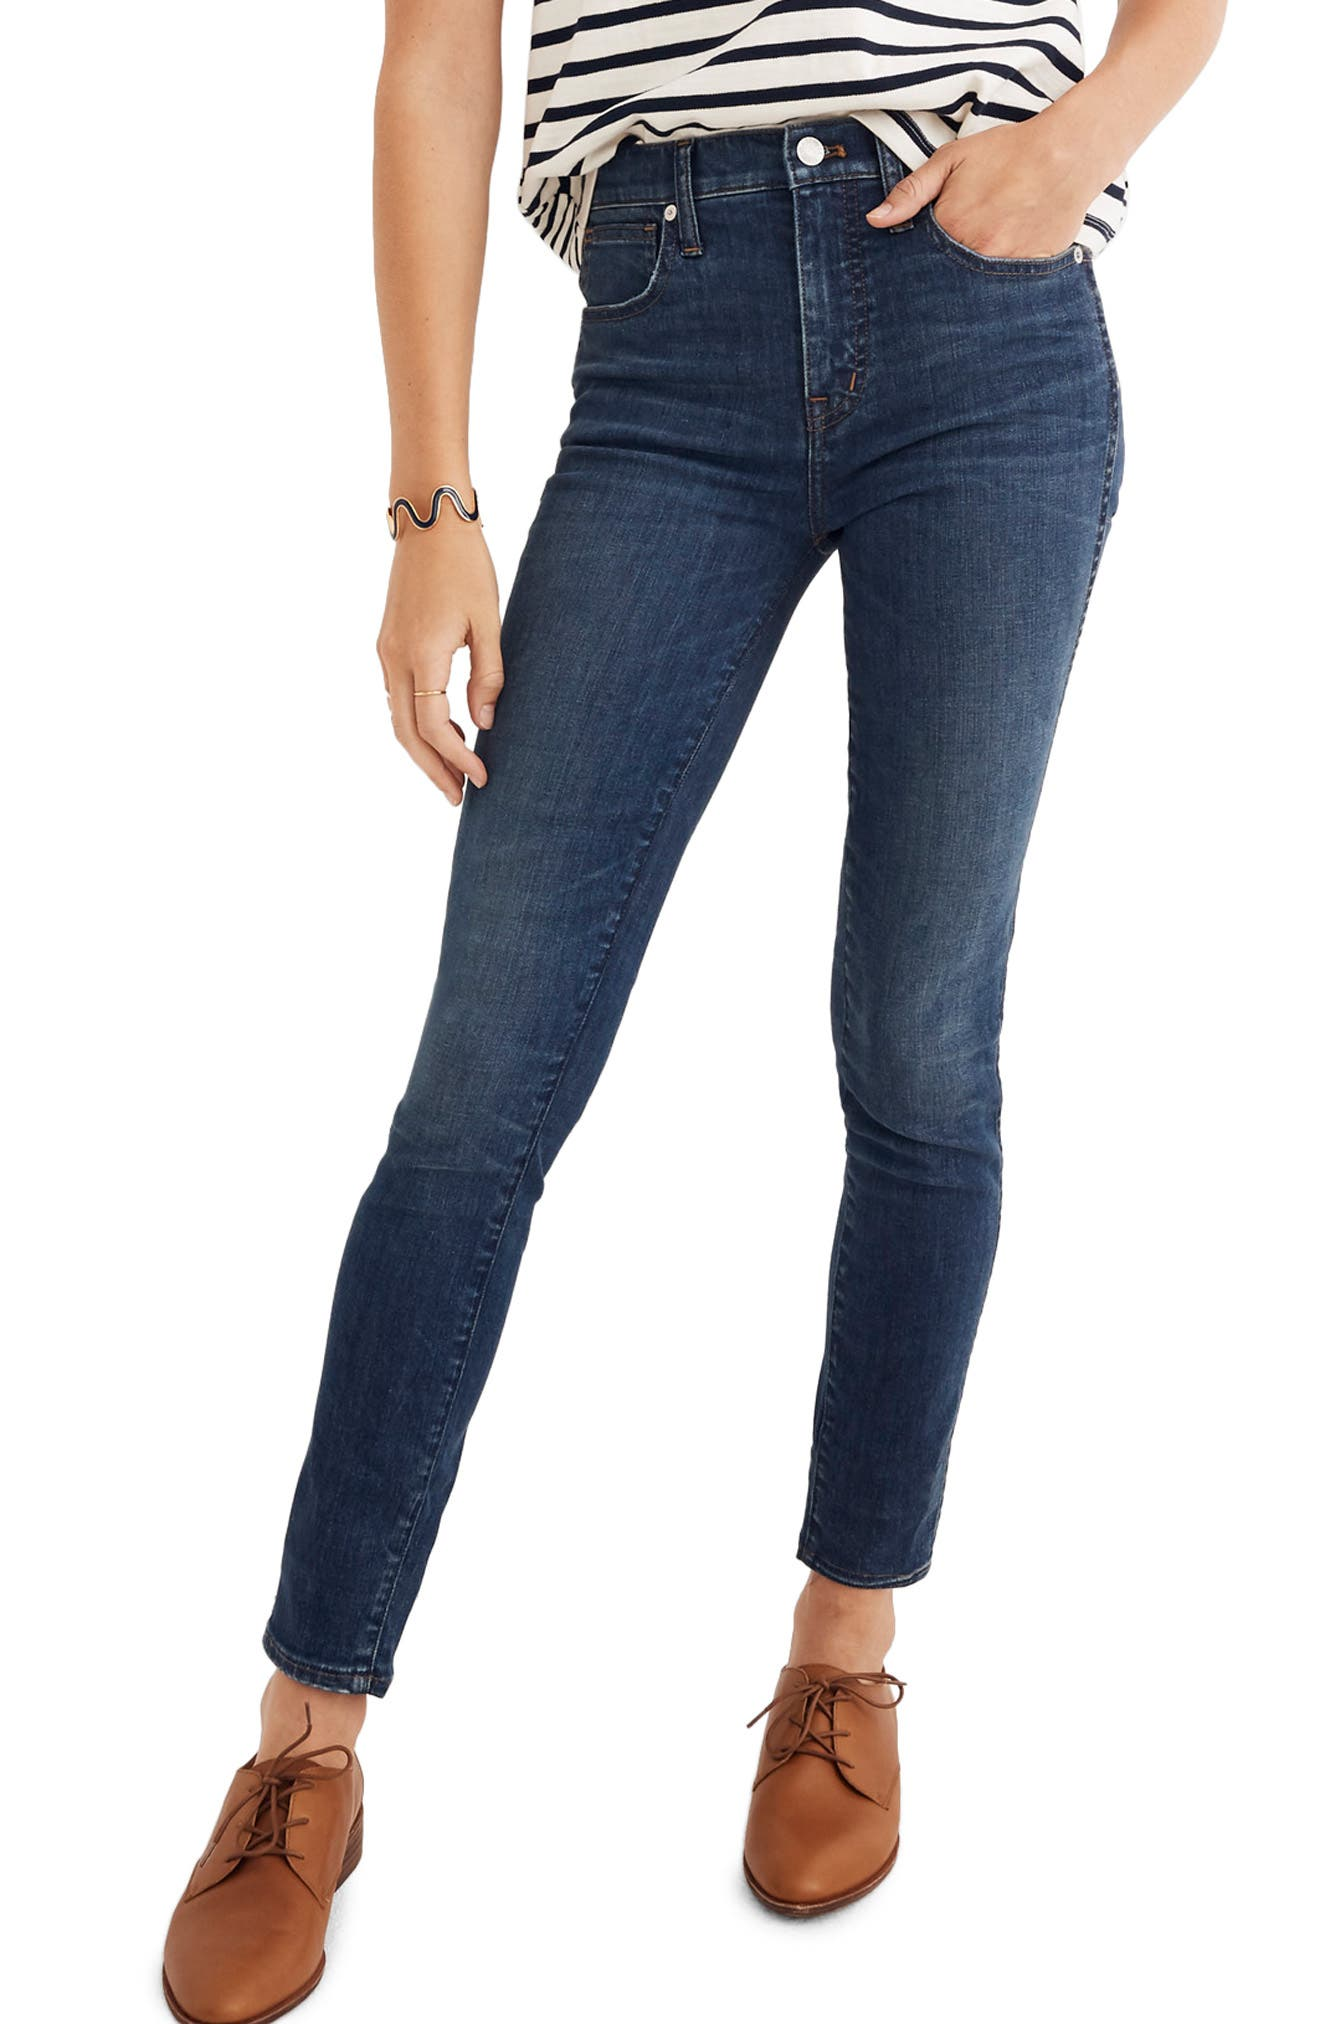 Eco Collection High Rise Skinny Jeans,                             Main thumbnail 1, color,                             ELINOR